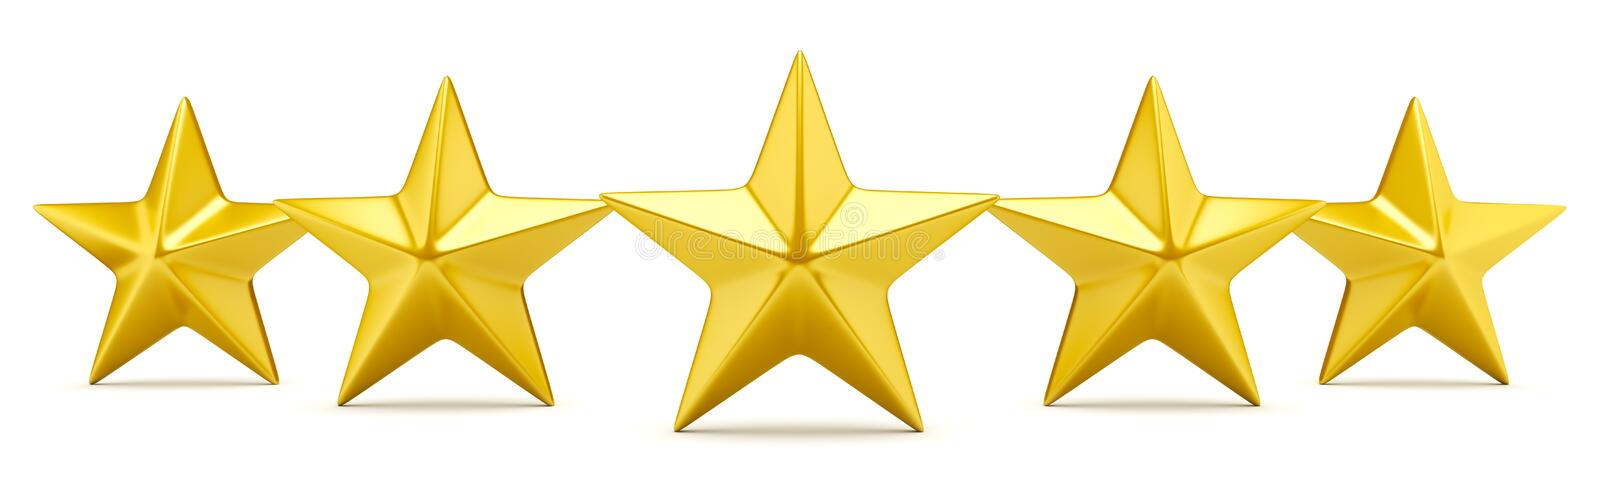 Five star rating shiny golden stars royalty free illustration